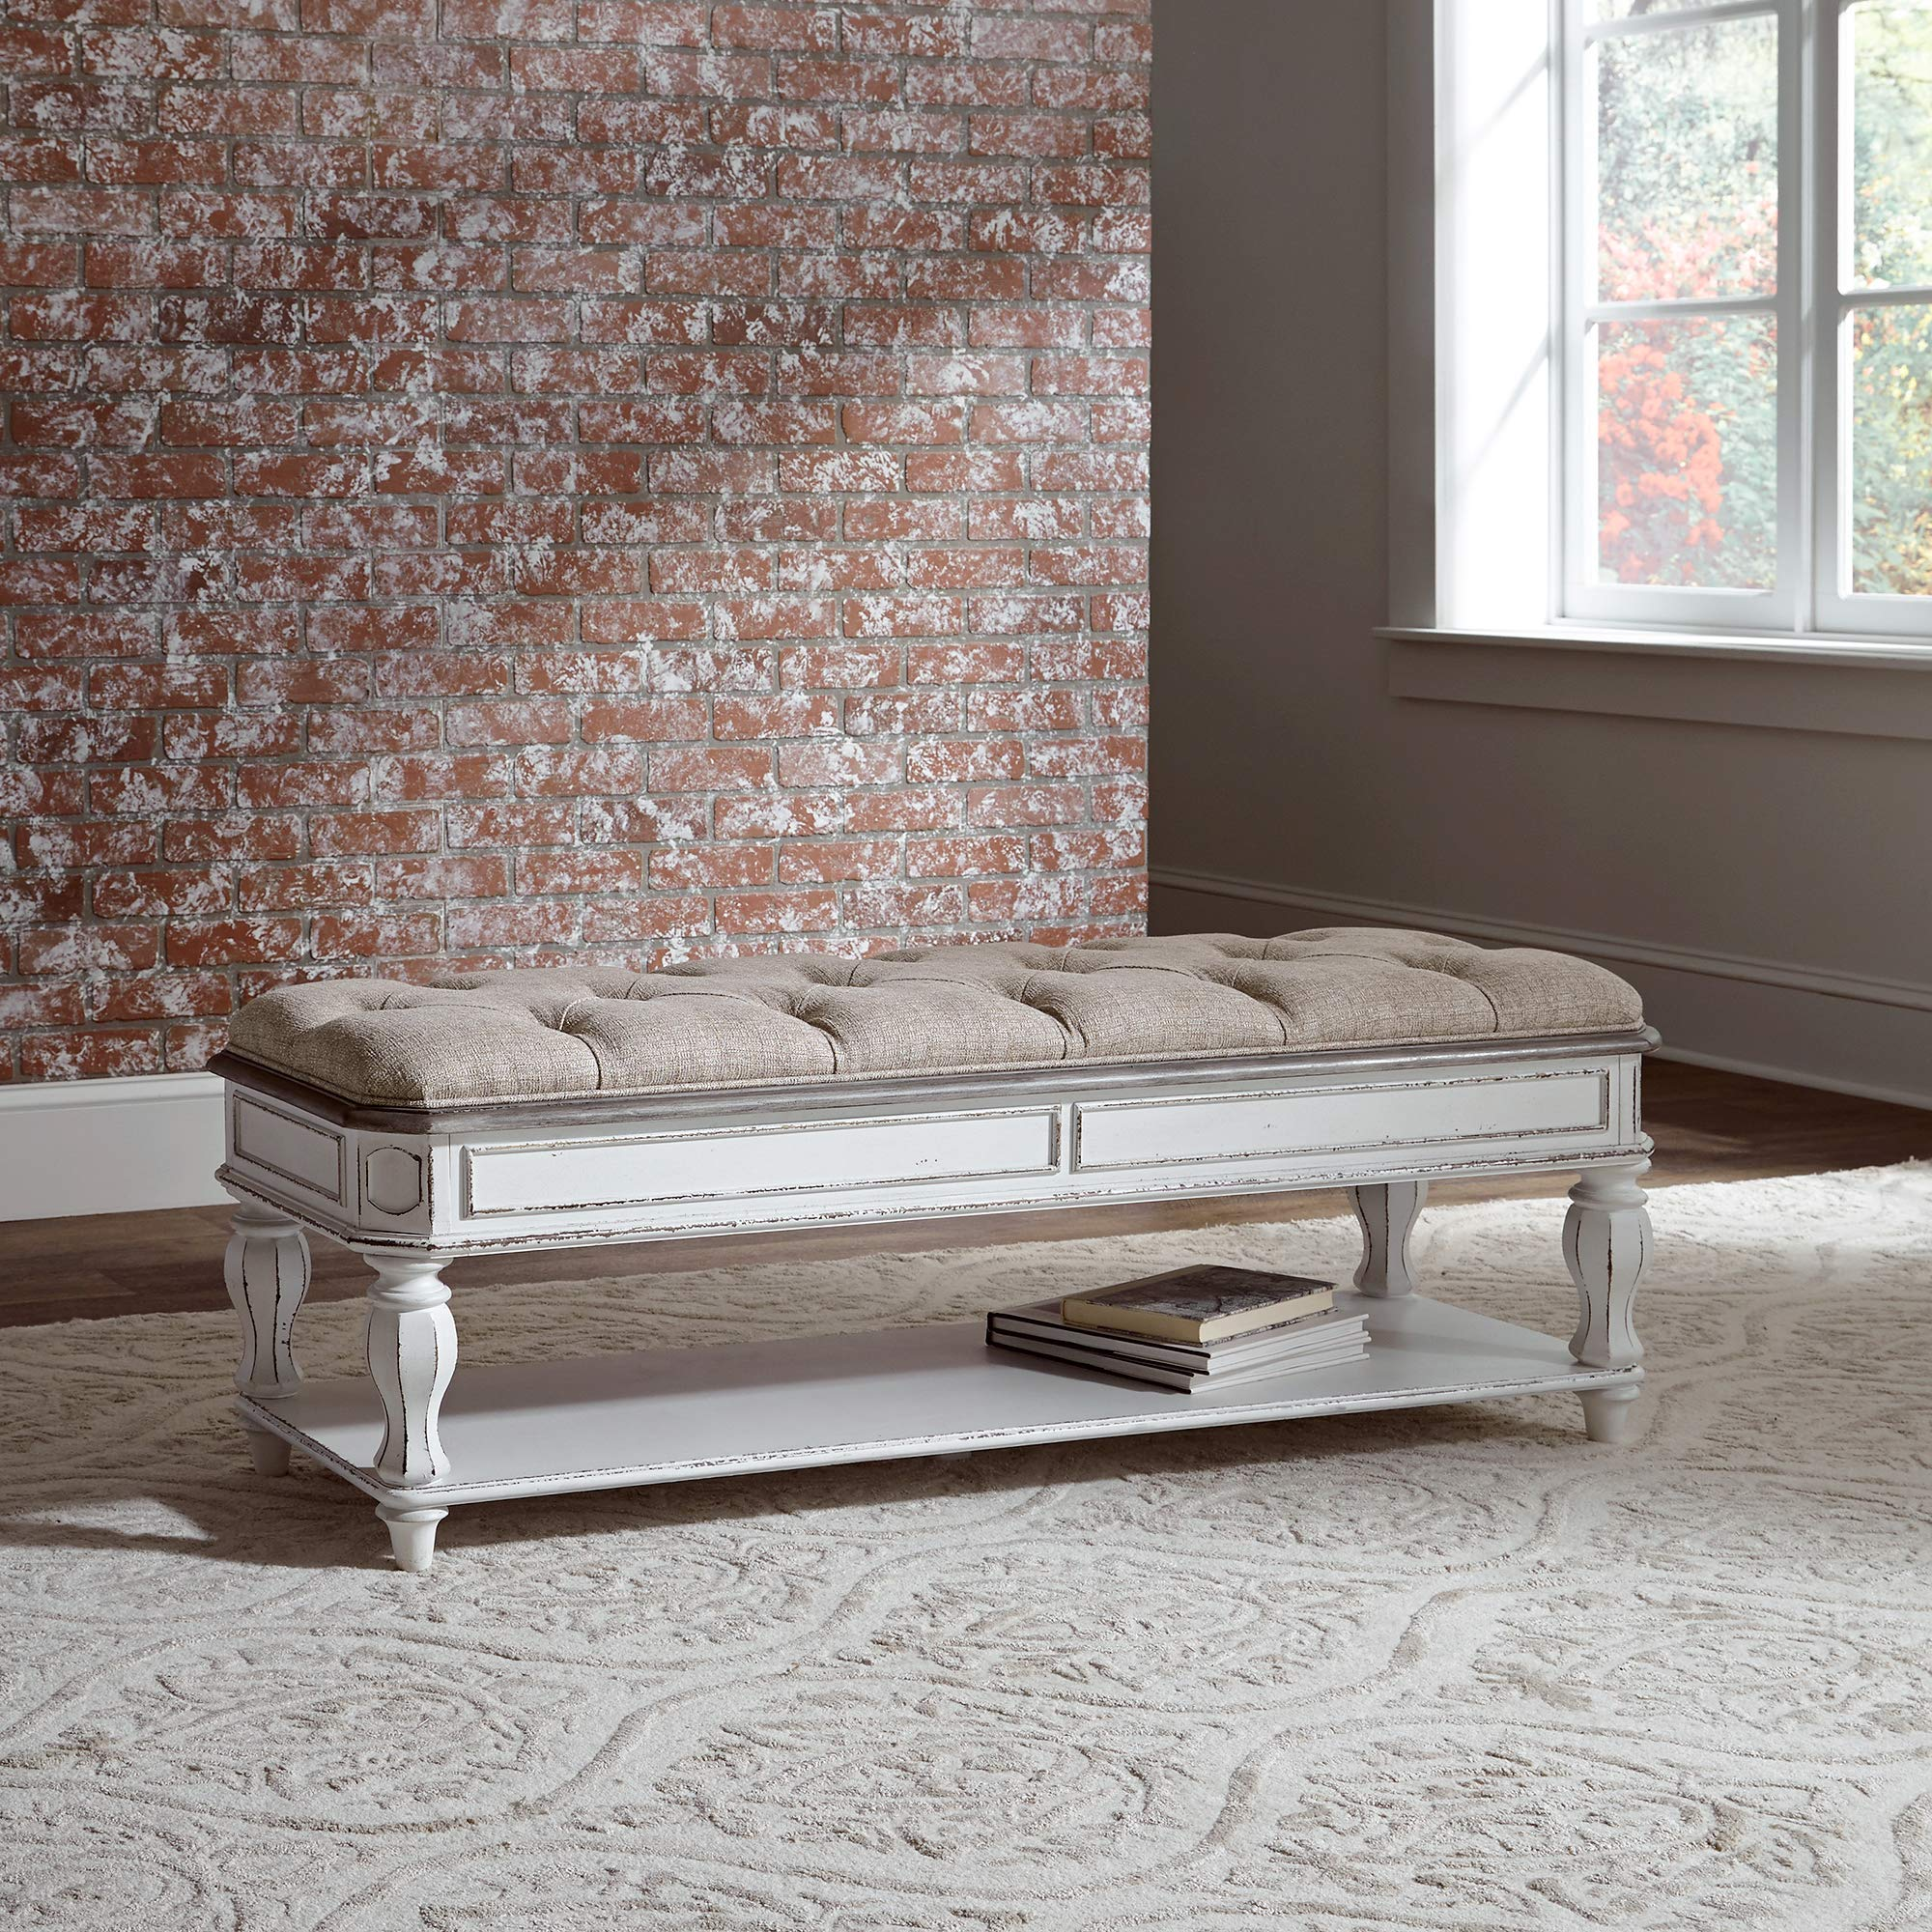 Liberty Furniture Industries Bed Bench, W54 x D18 x H20, White by Liberty Furniture INDUSTRIES